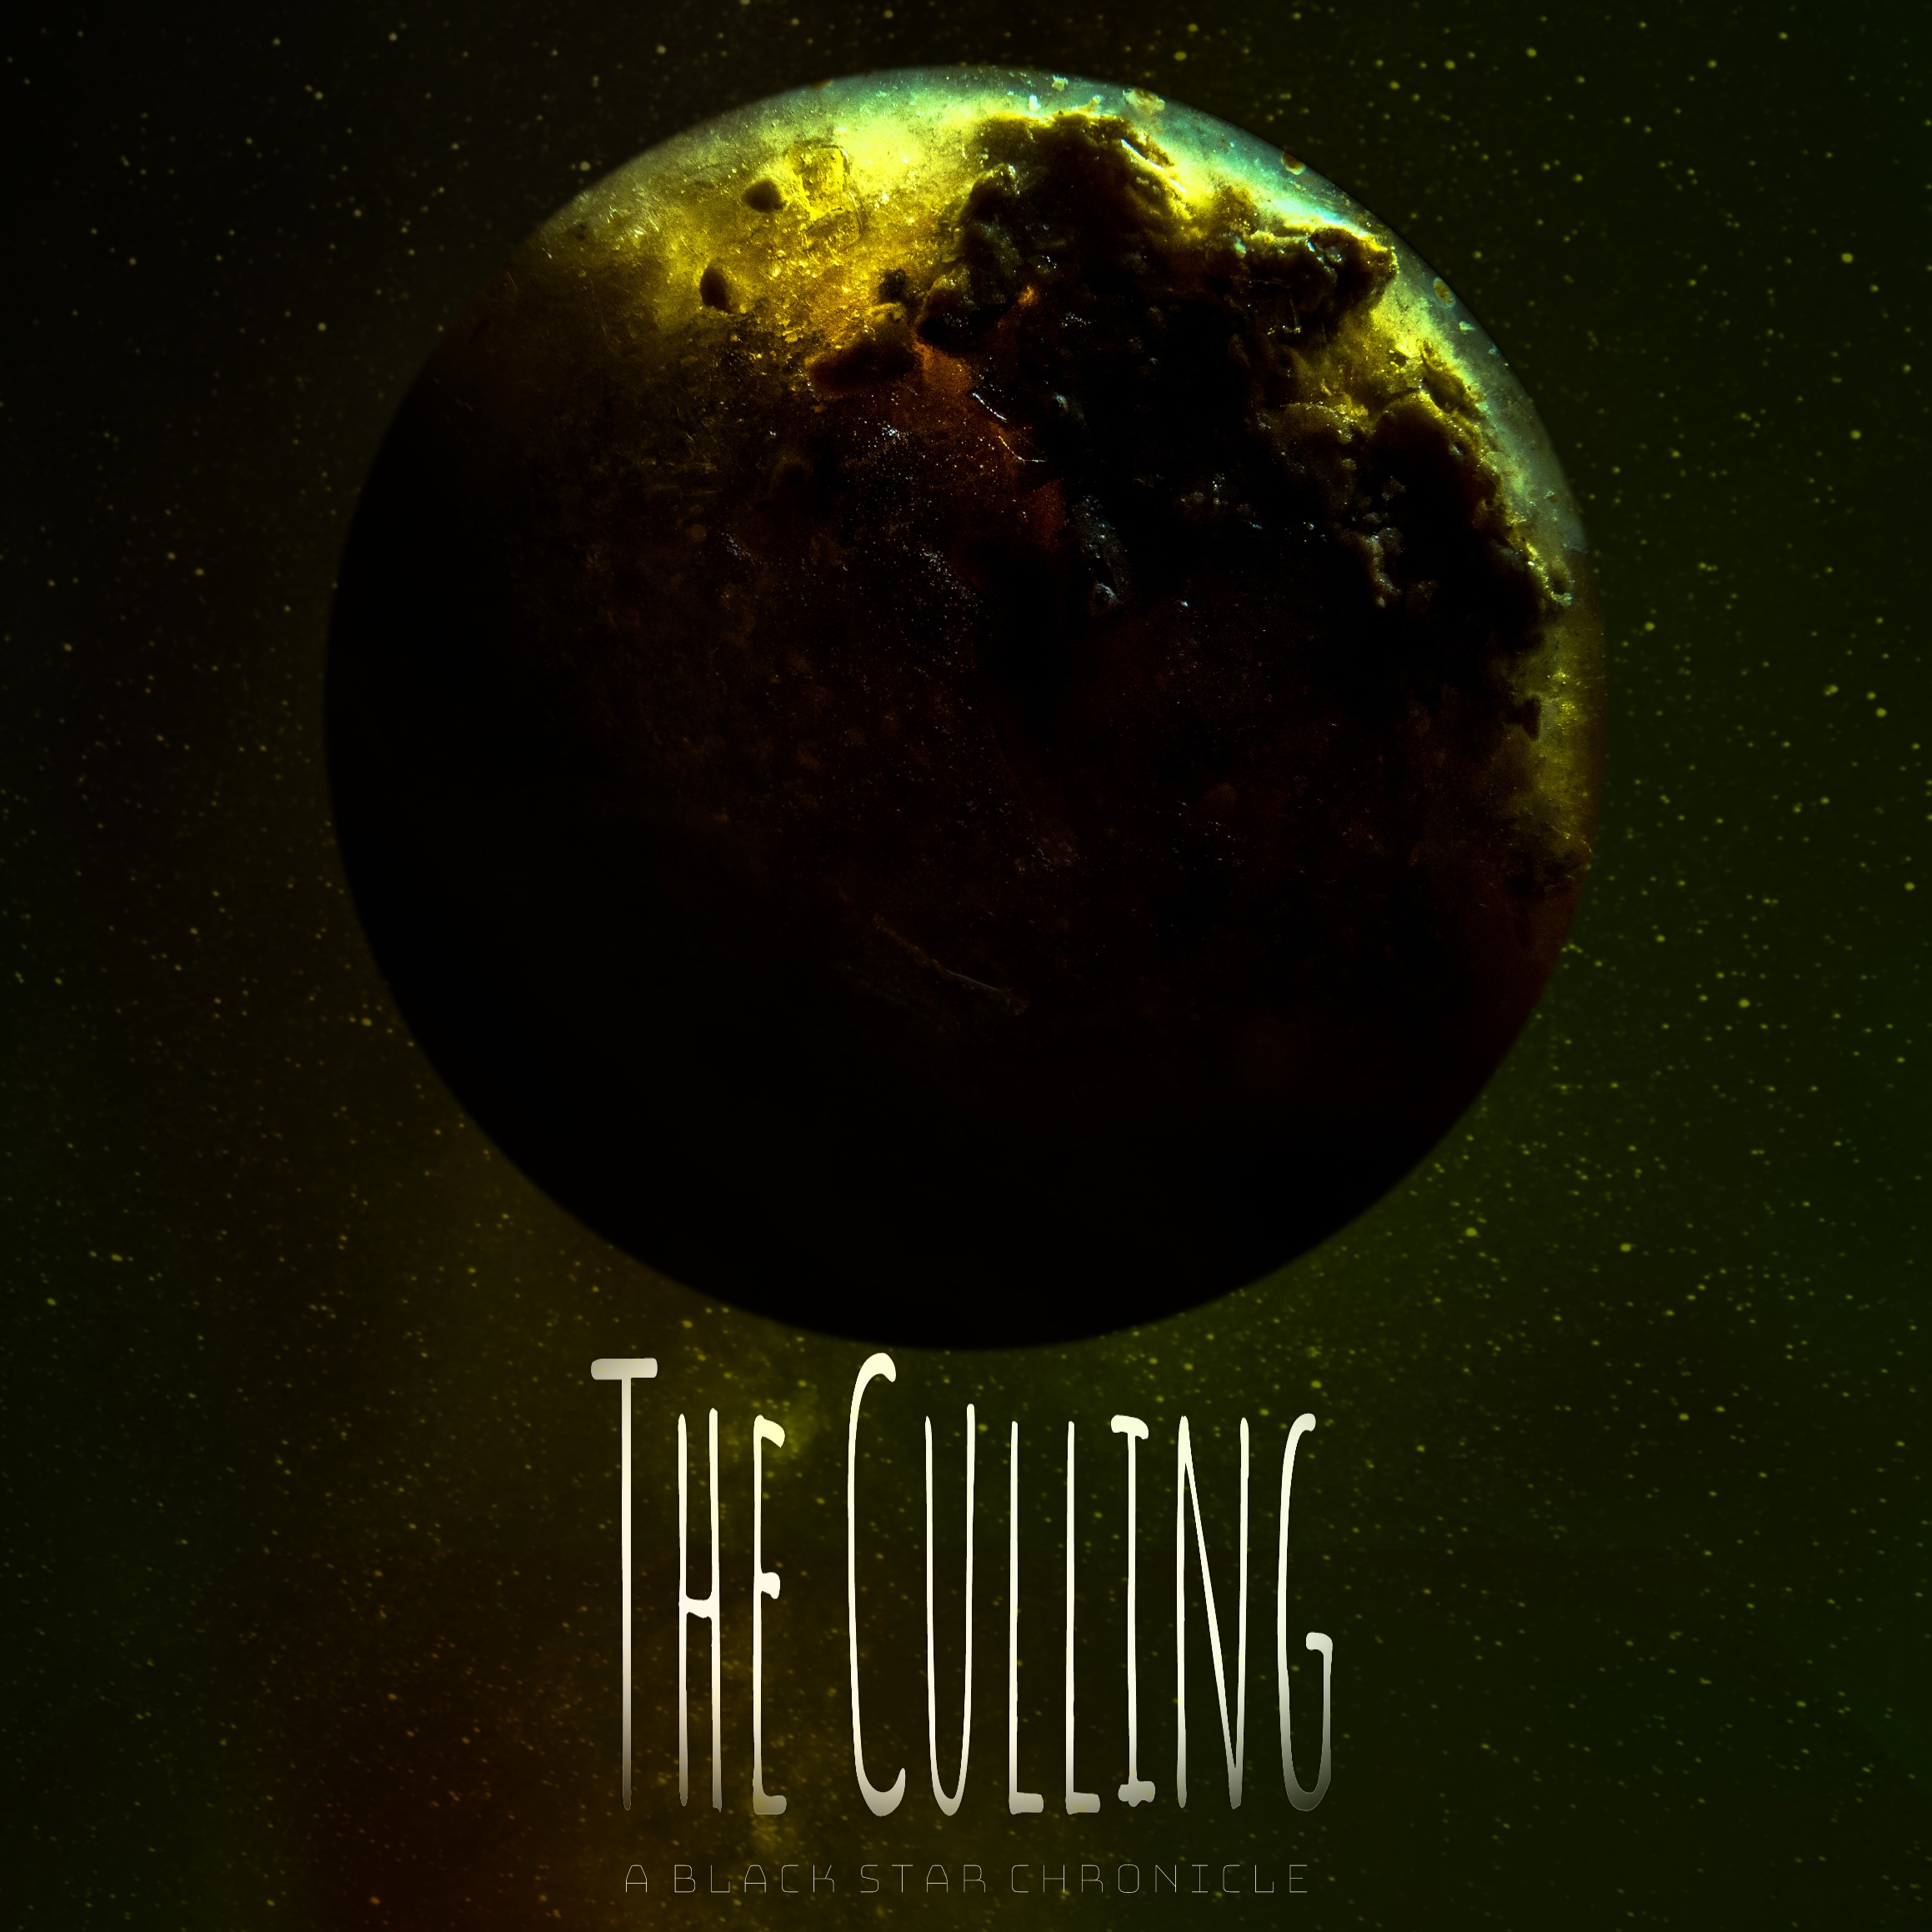 The Culling Podcast